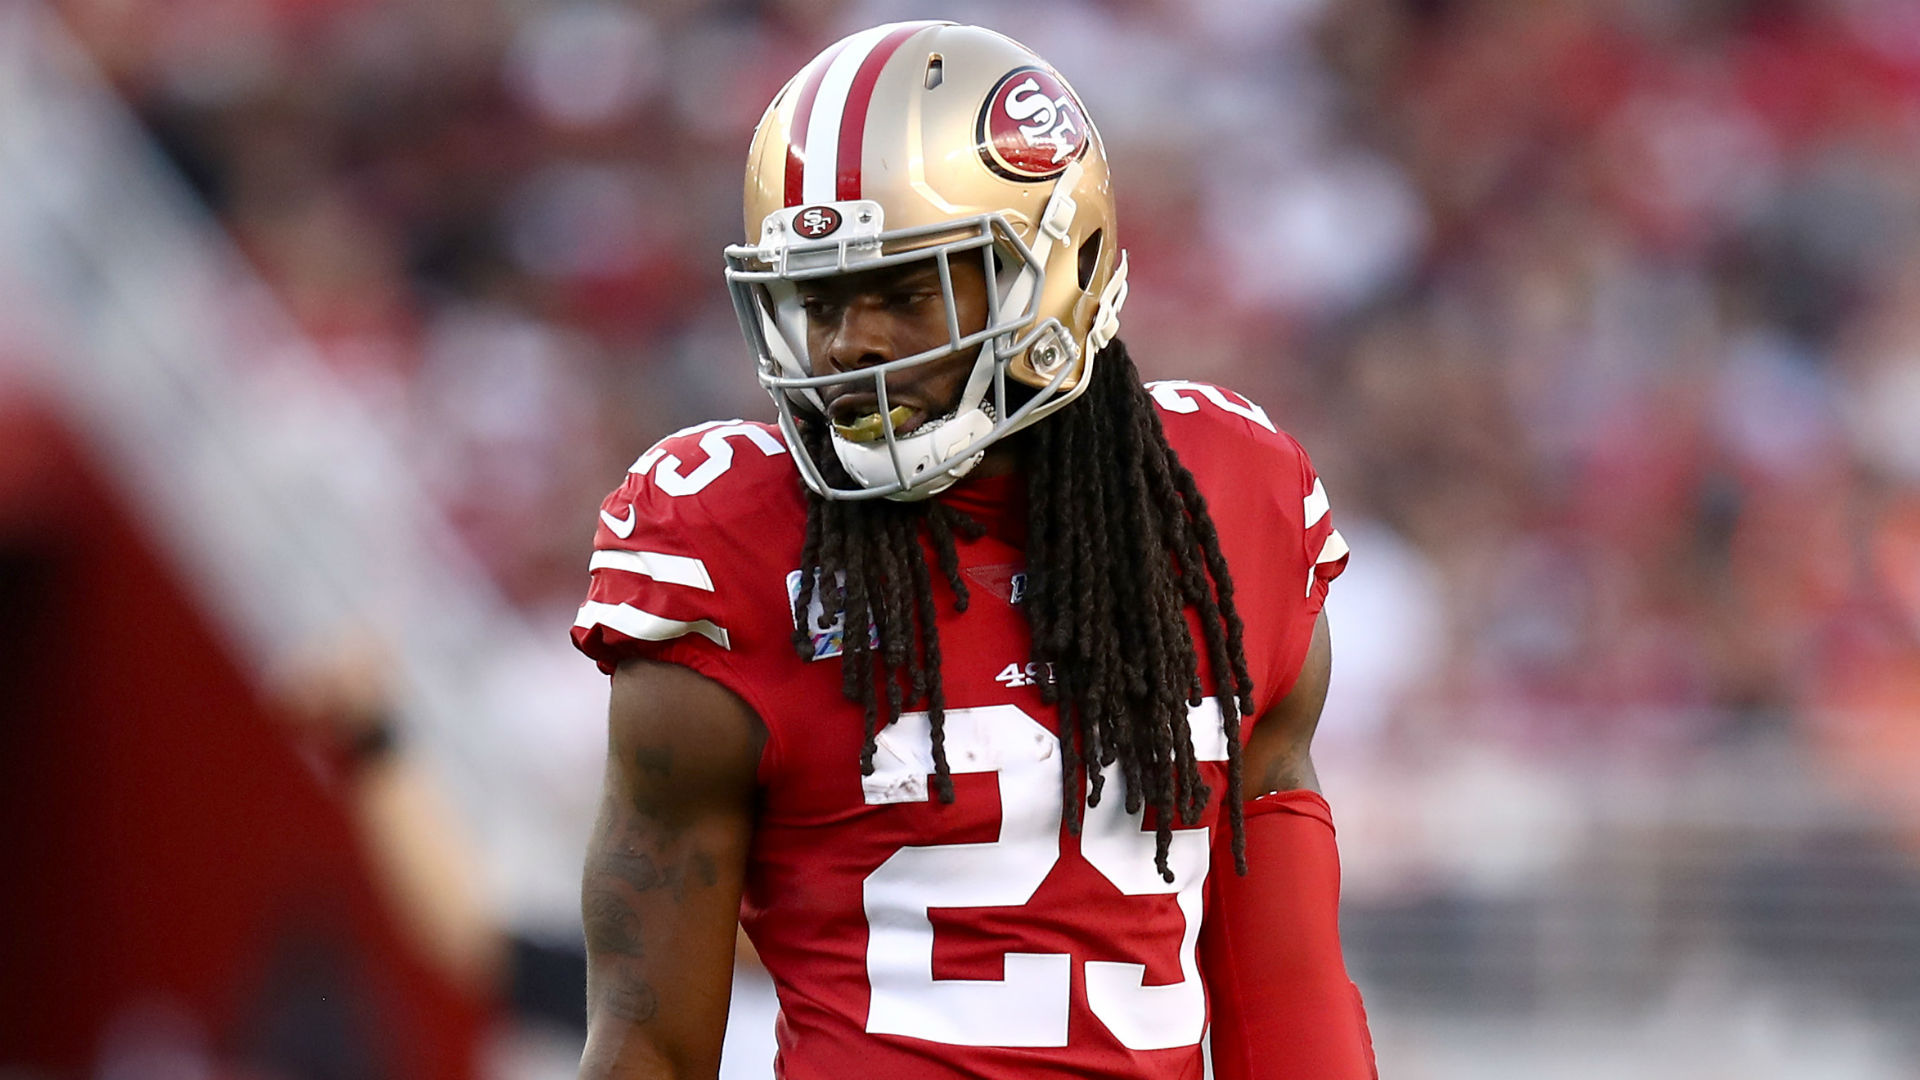 Richard Sherman explains why he owes Baker Mayfield an apology for starting silly handshake controversy